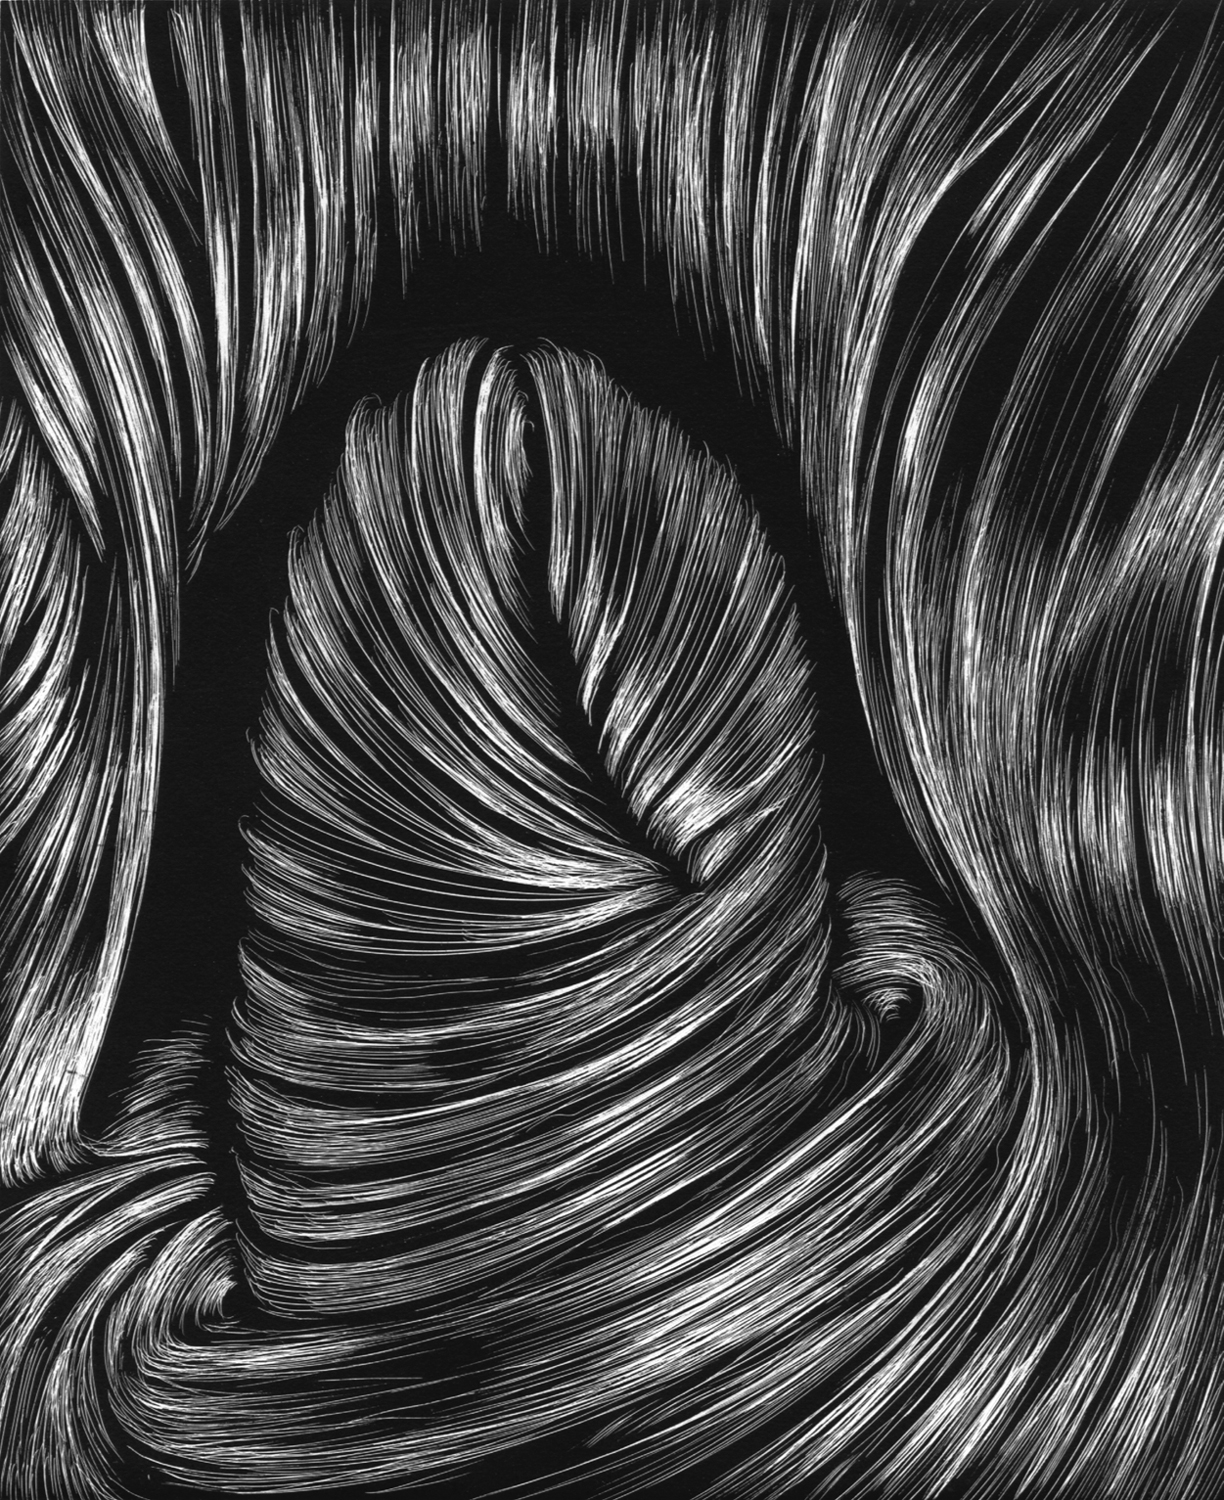 Exquisite Knot by Cathy Ward